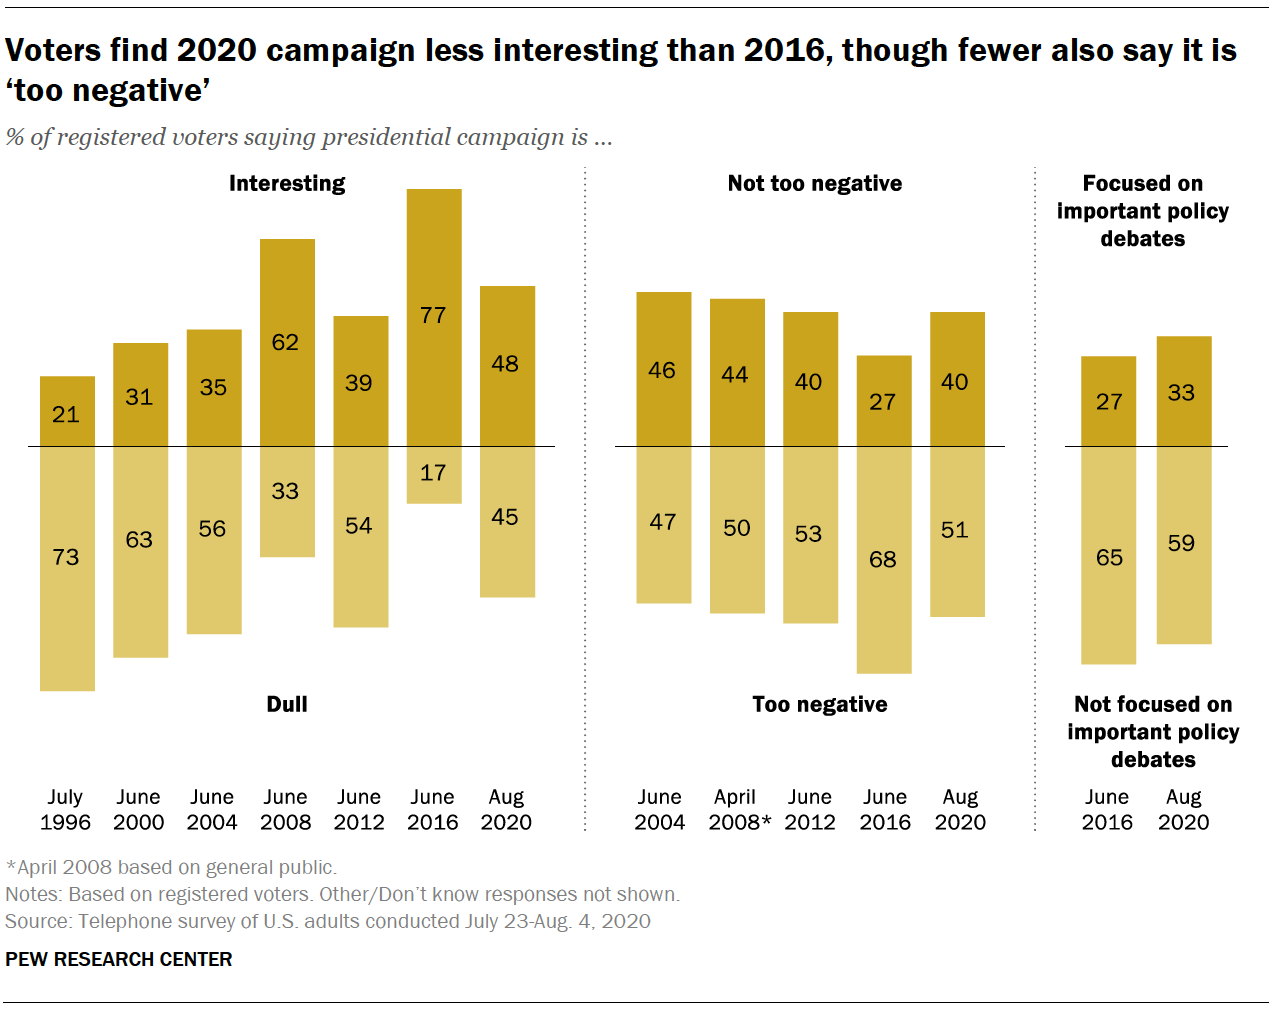 Voters find 2020 campaign less interesting than 2016, though fewer also say it is 'too negative'